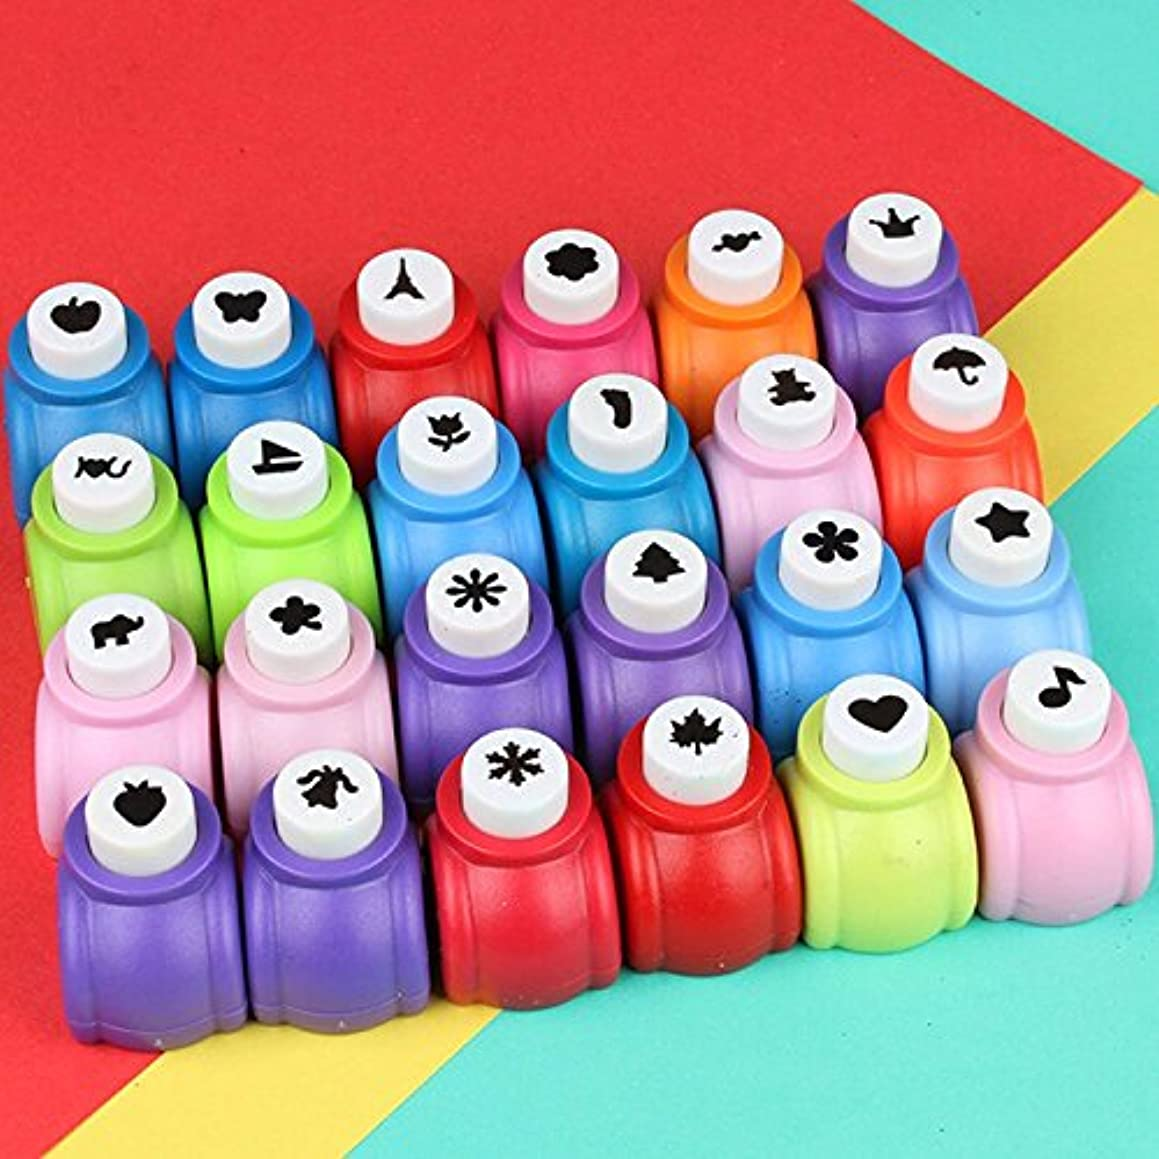 Fascola Mini Paper Craft Punch Card Scrapbooking Engraving Kid Cut DIY Handmade Hole Puncher for Festival Papers and Greeting Card Set of 20 with Random Colors (Set of 20)